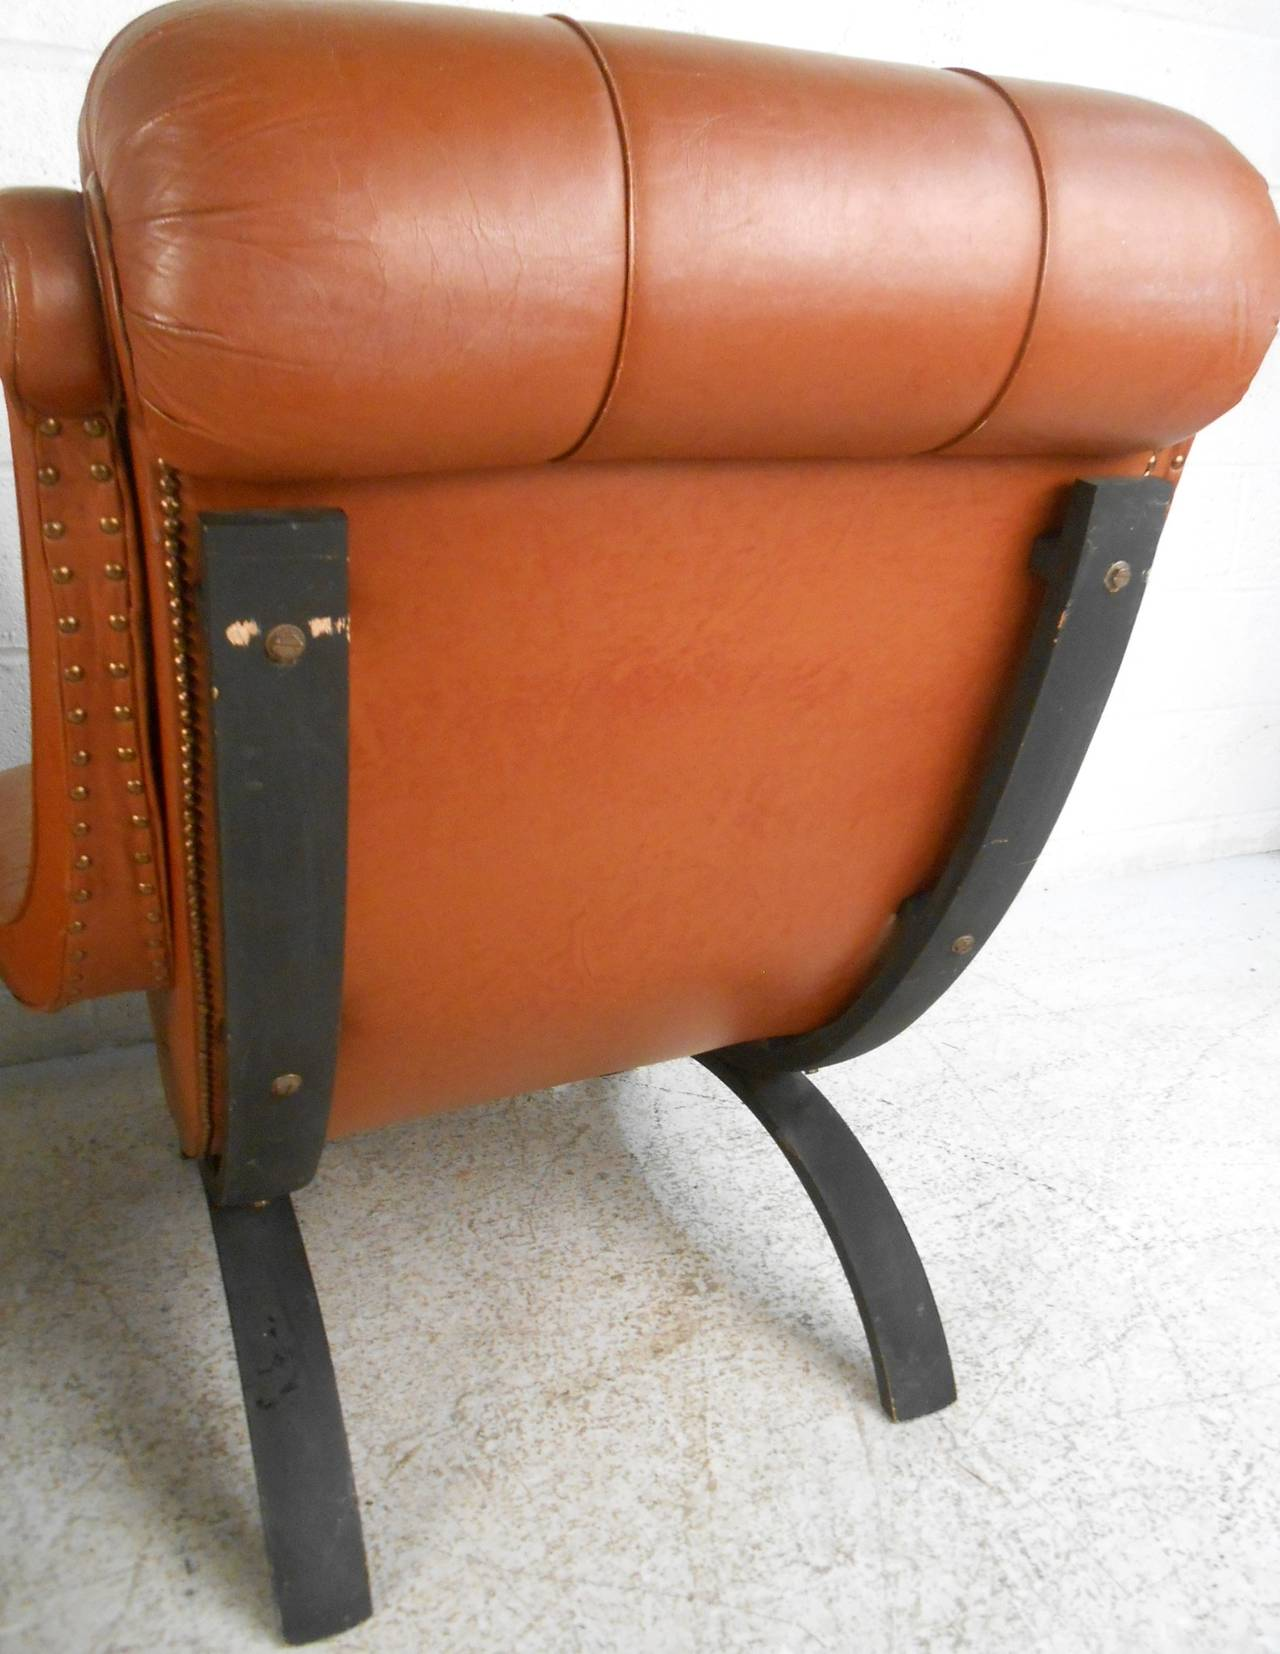 Pair of Midcentury Tufted Leather Lounge Chairs In Good Condition For Sale In Brooklyn, NY